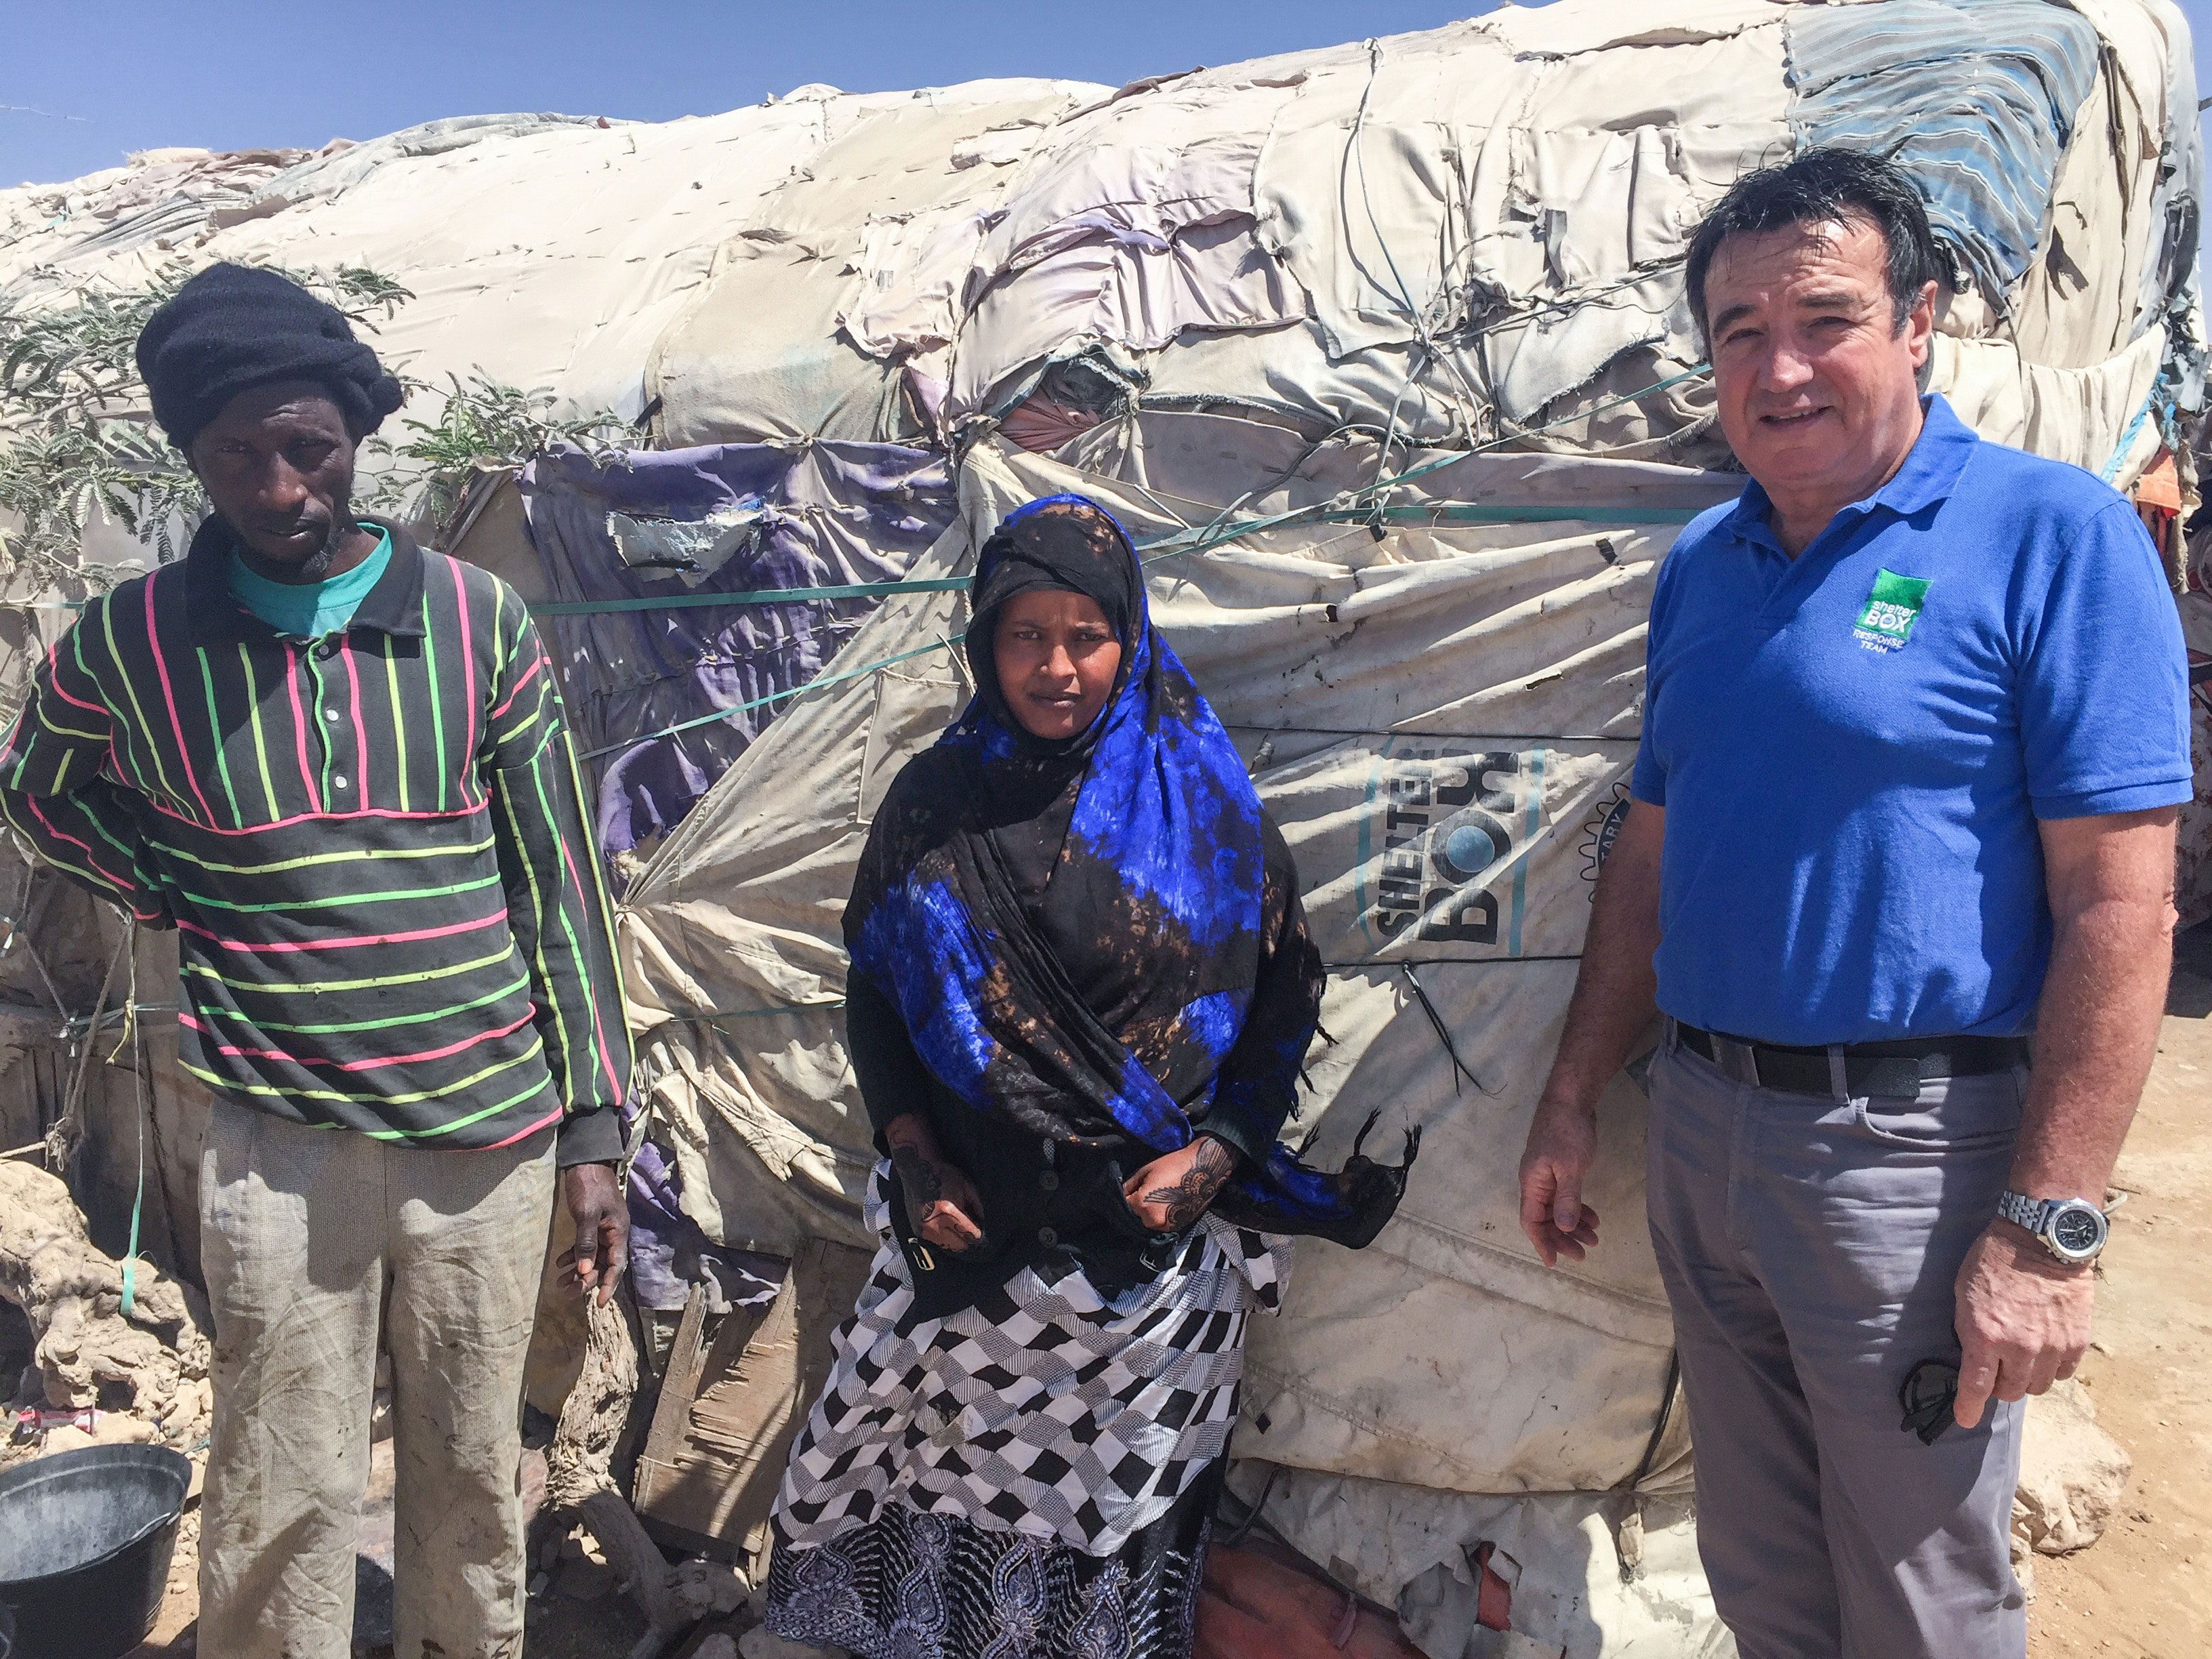 Muna Mohammed with 10 year old ShelterBox tent making up part of a much larger structure, her Café Prosperity.